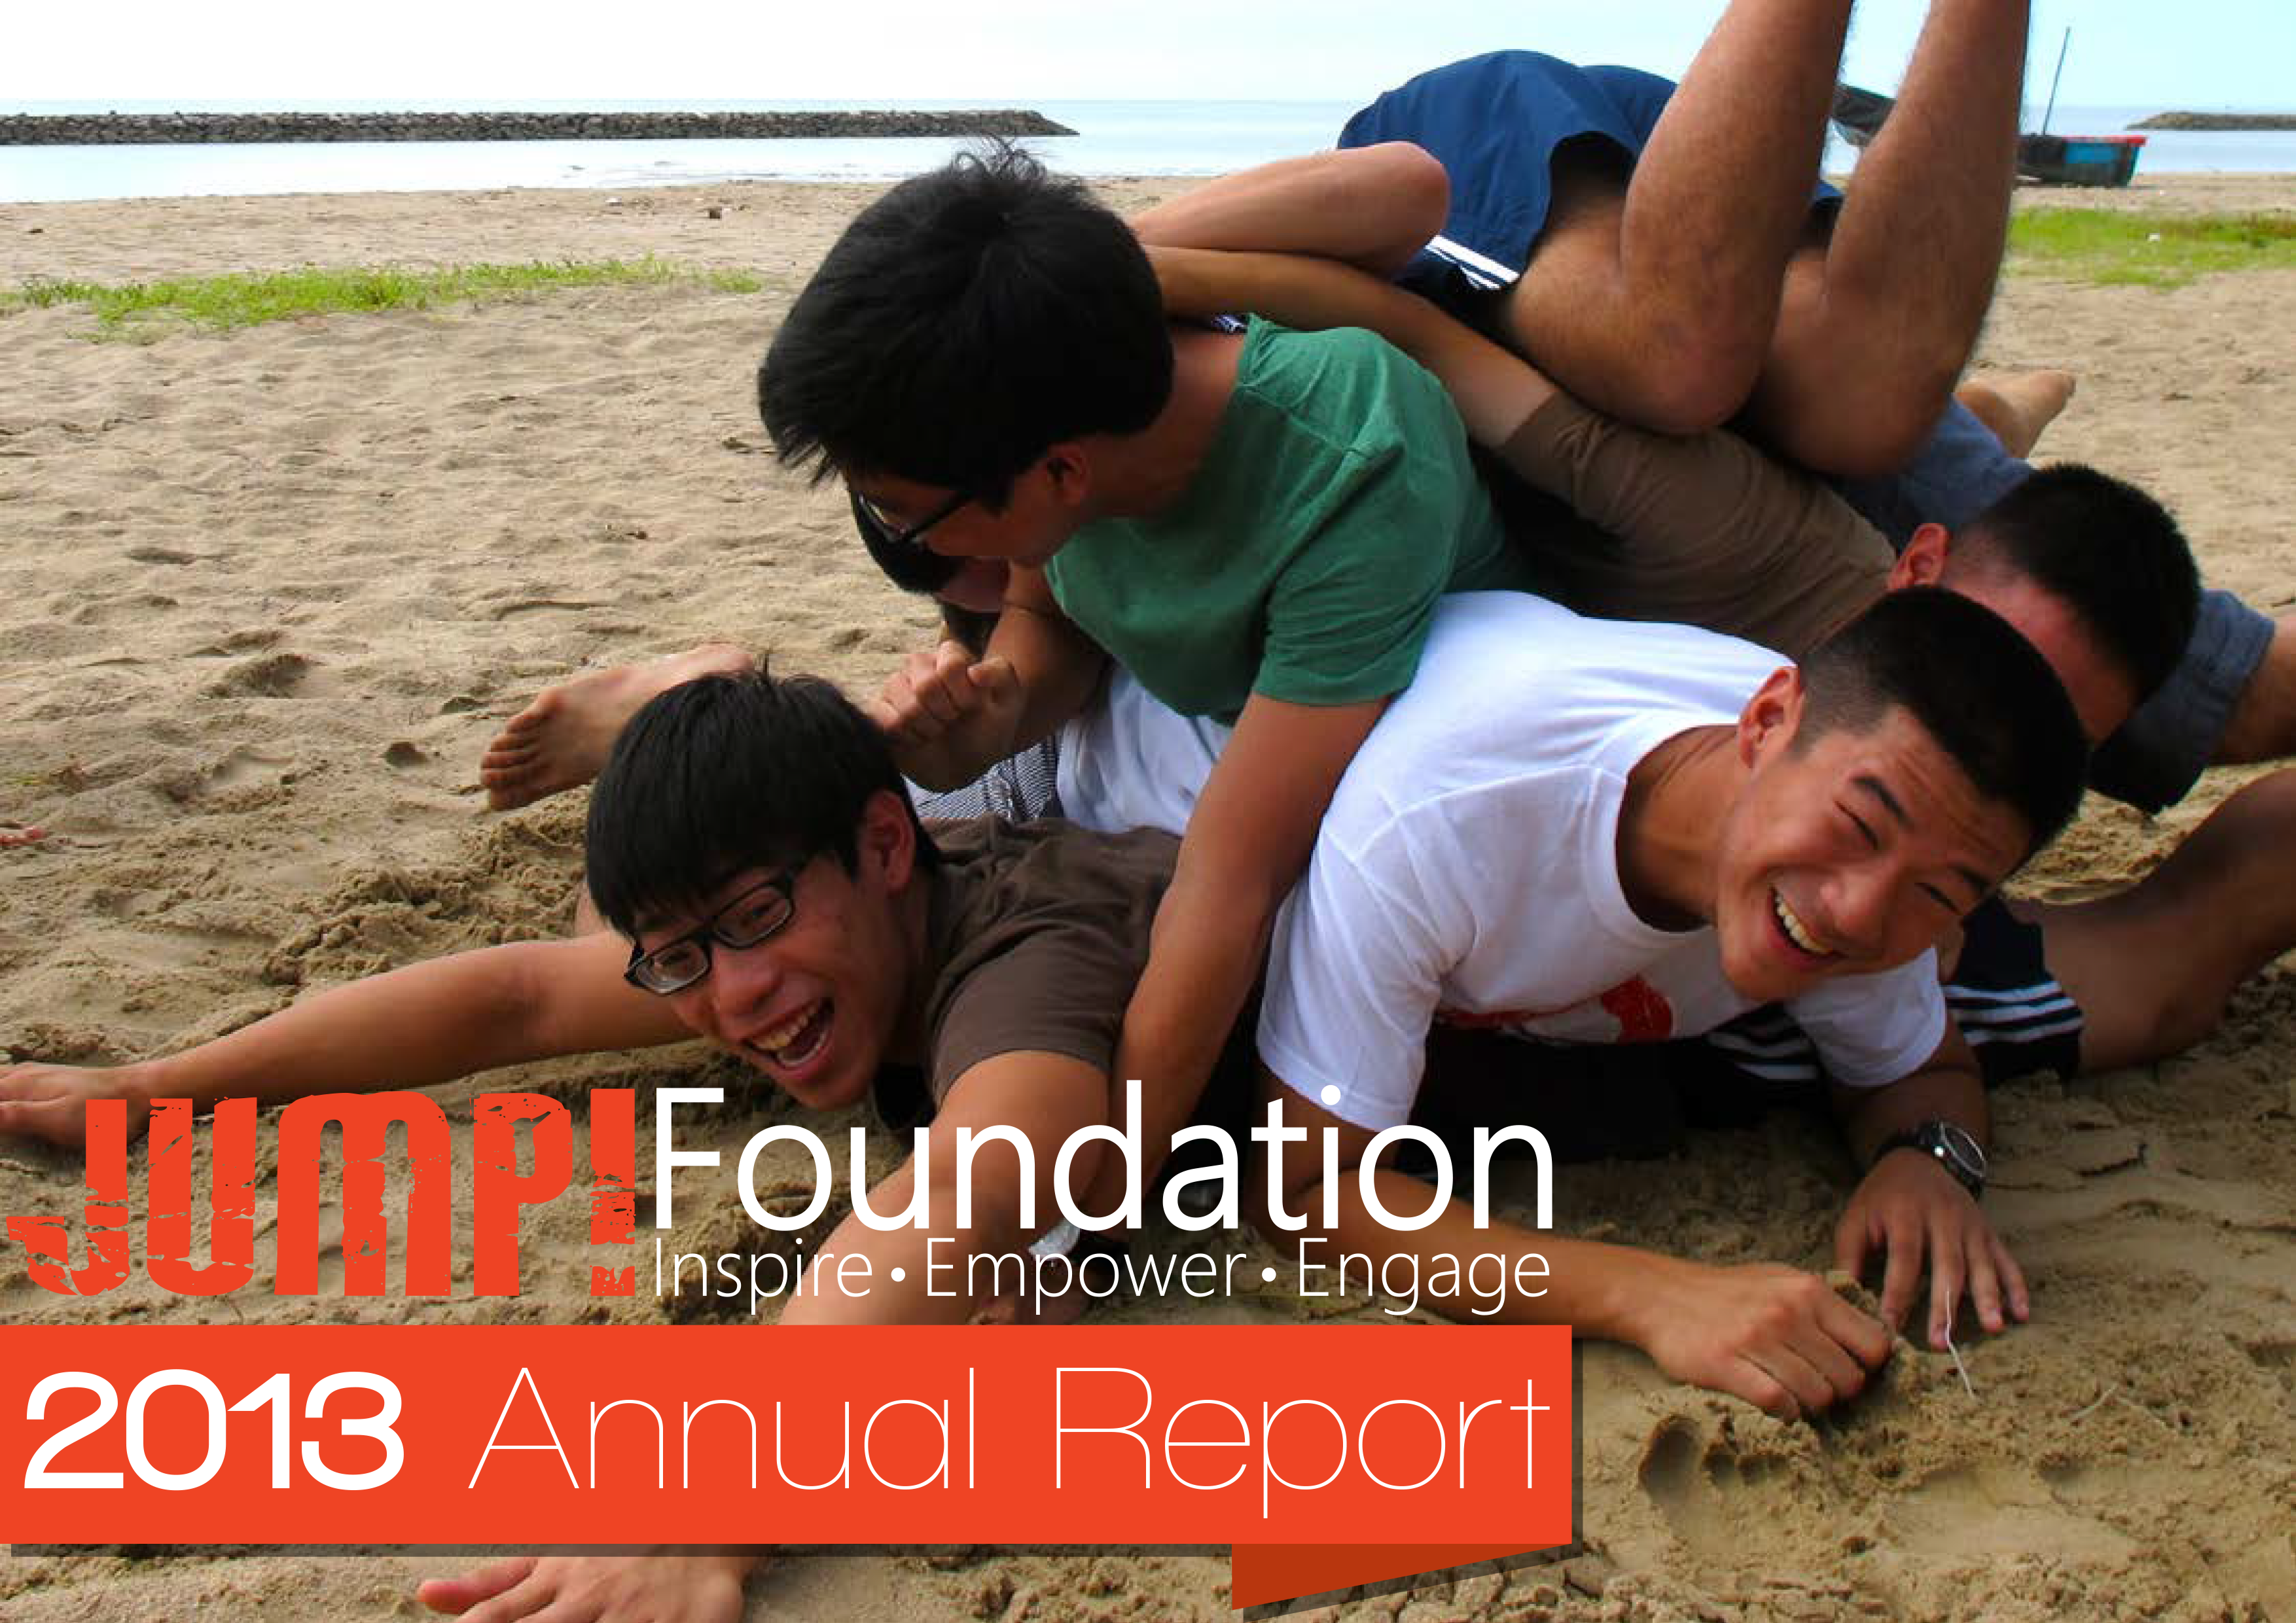 JUMP! Foundation Annual Report 2013